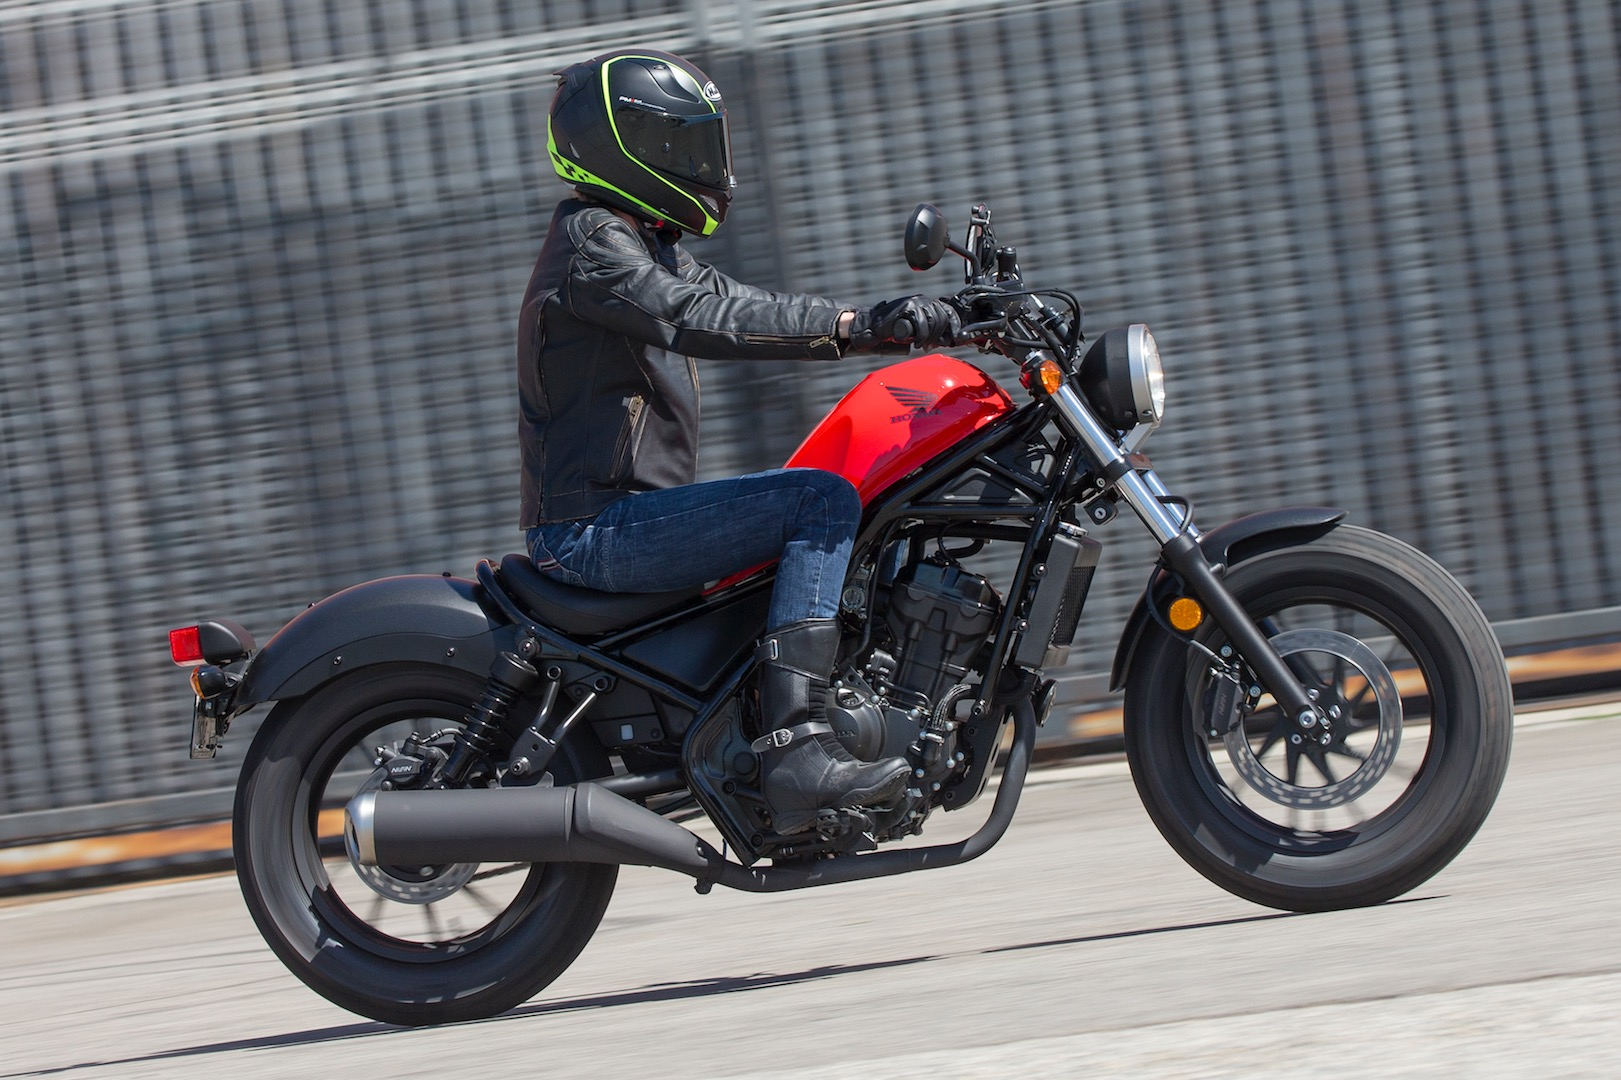 2017 Honda Rebel 500 and 300 First Ride Review | 13 Fast Facts